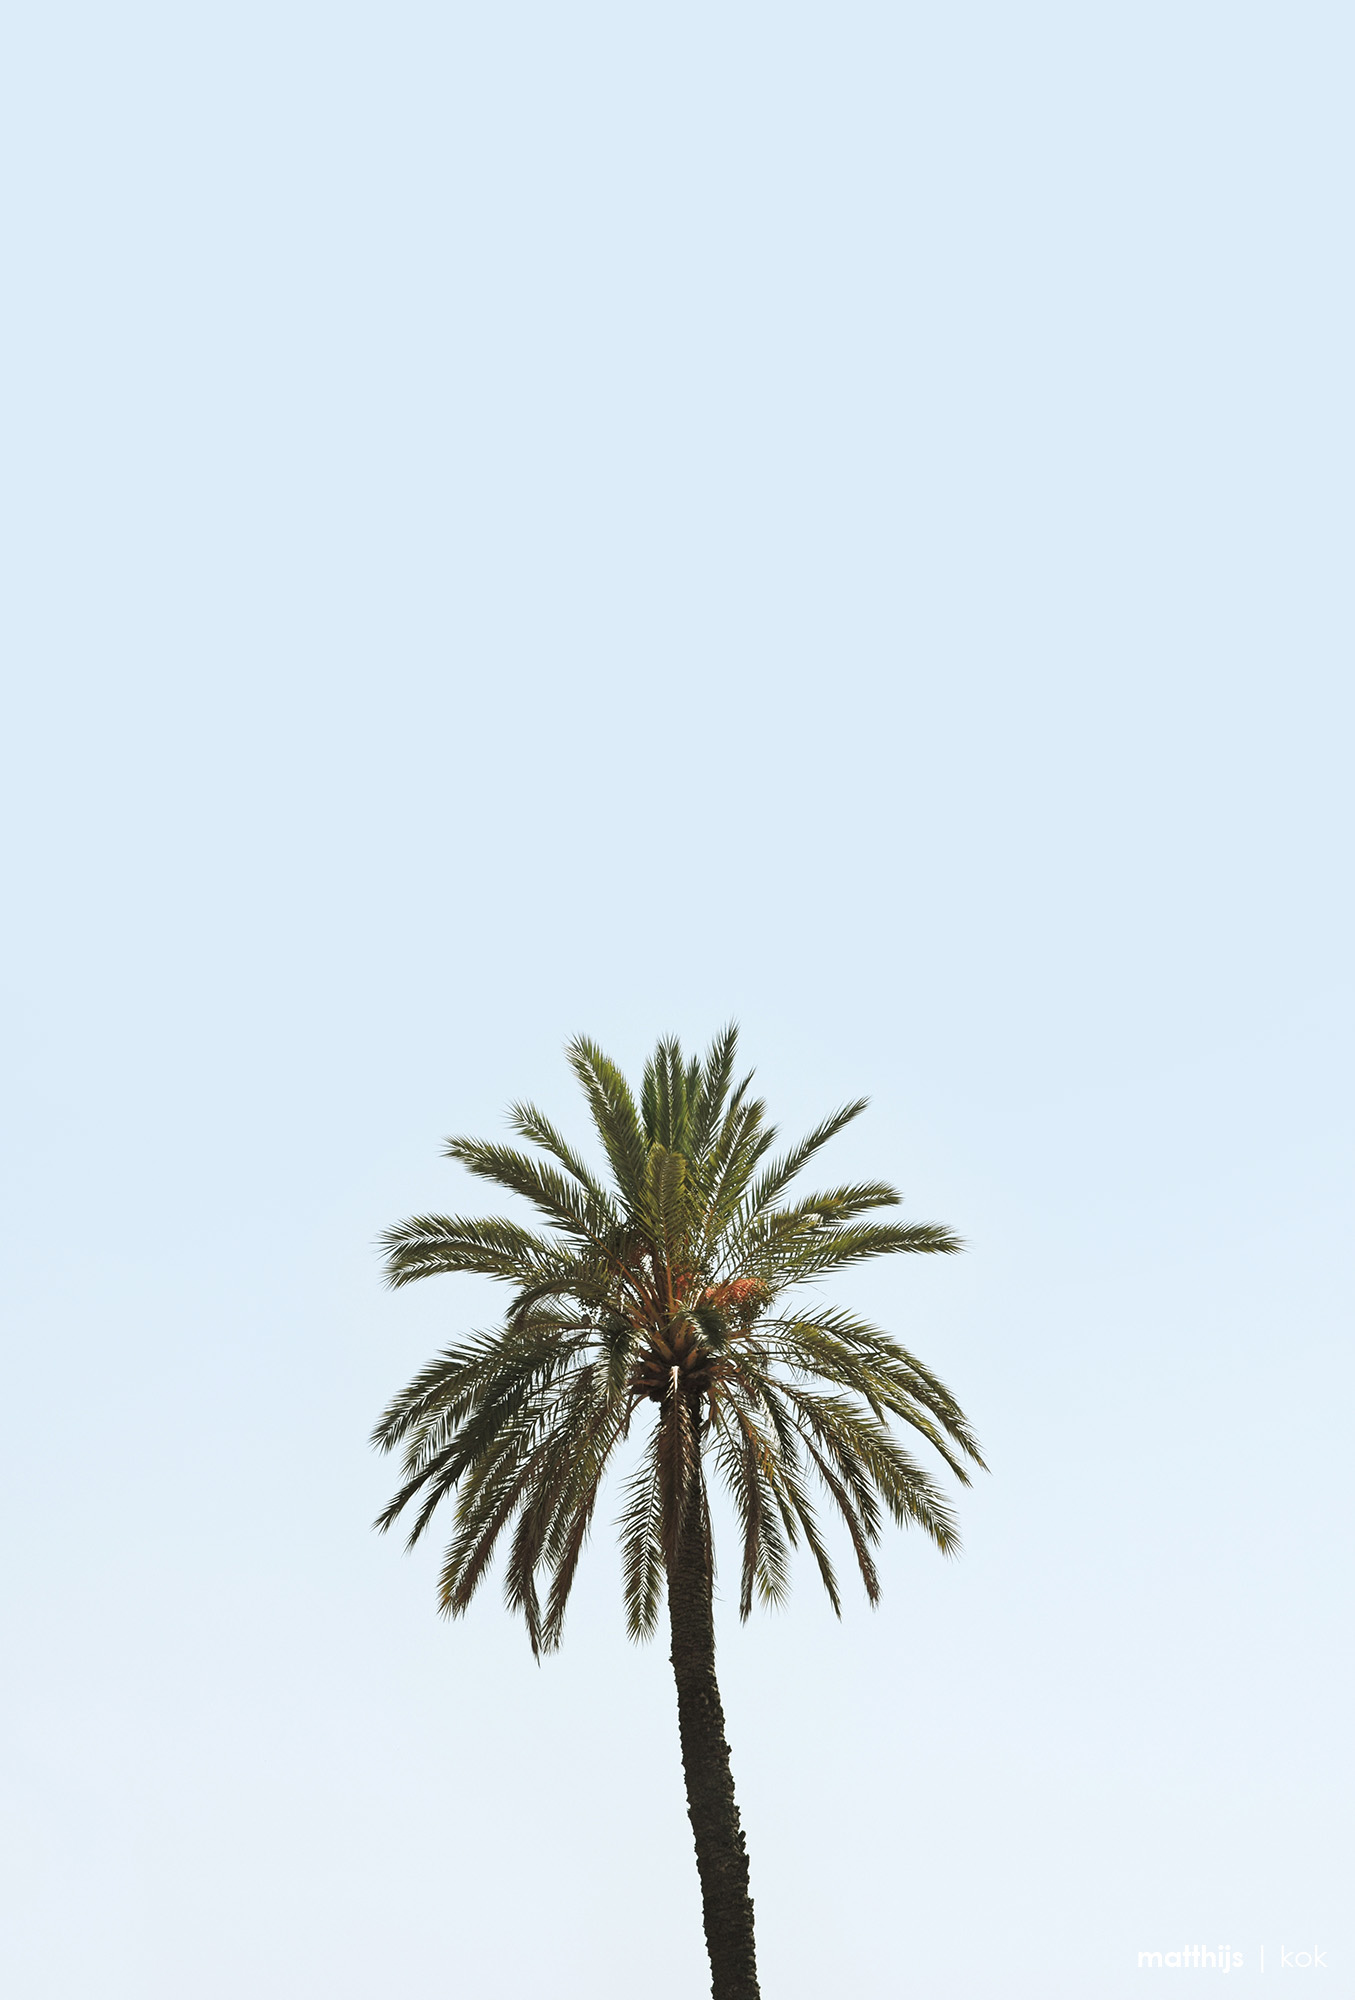 Palm, Marrakech | Photo by Matthijs Kok